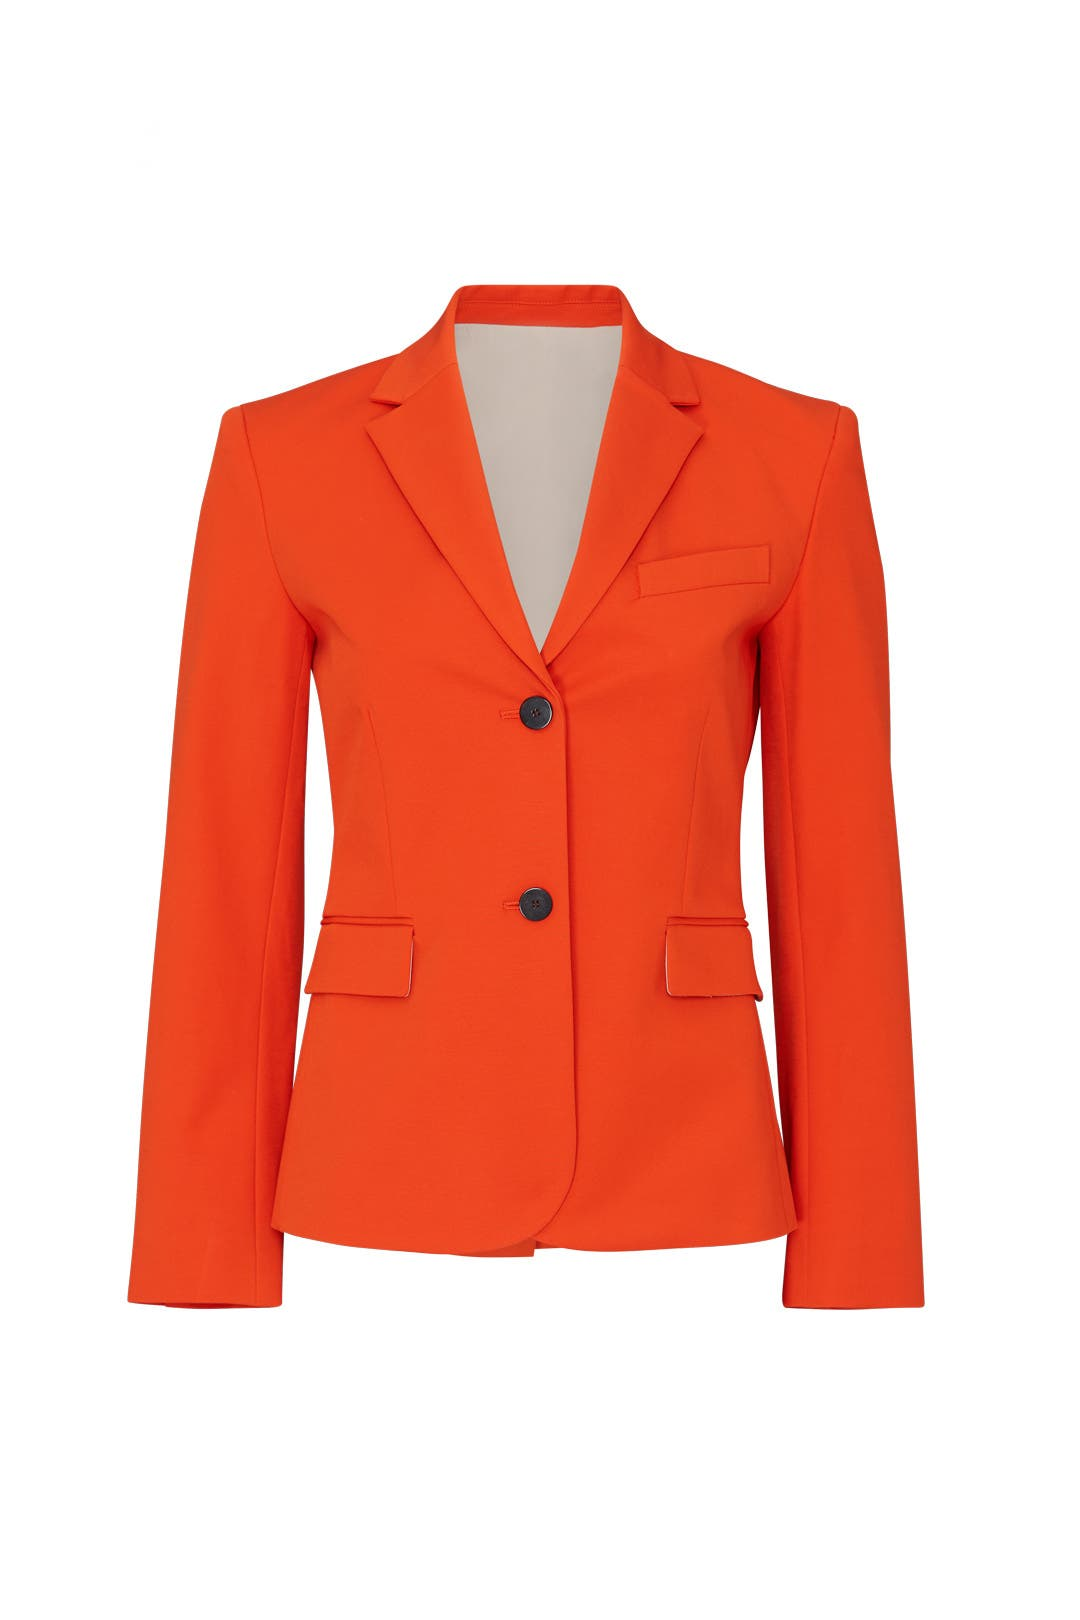 8257fa9692 Fire Opal Shrunken Blazer by Theory for $85 | Rent the Runway